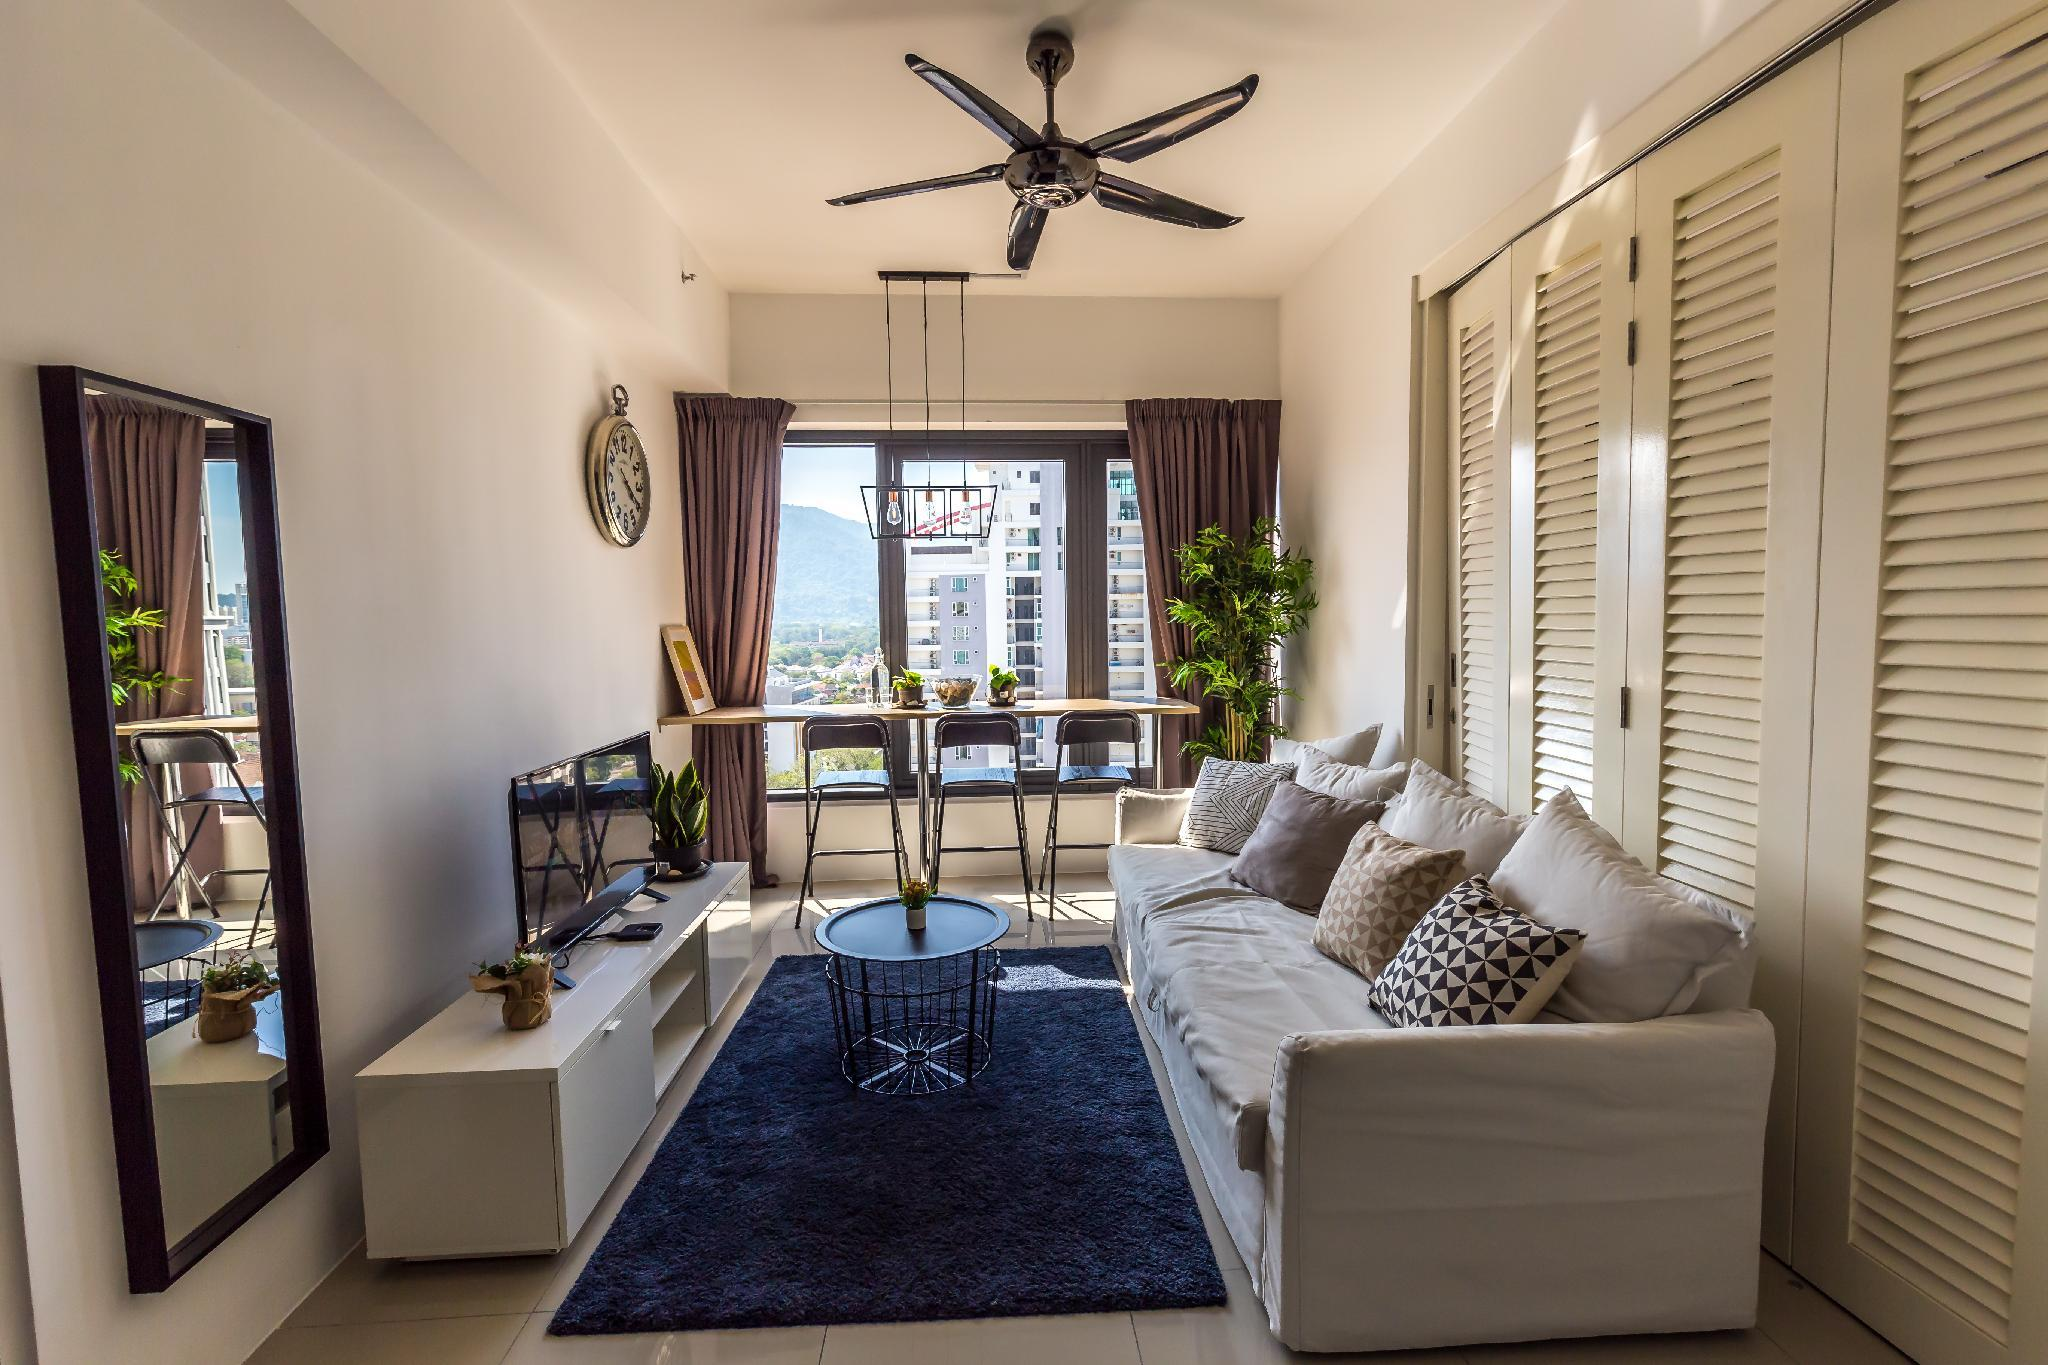 2BR Condo Central Georgetown By Airlevate Suites